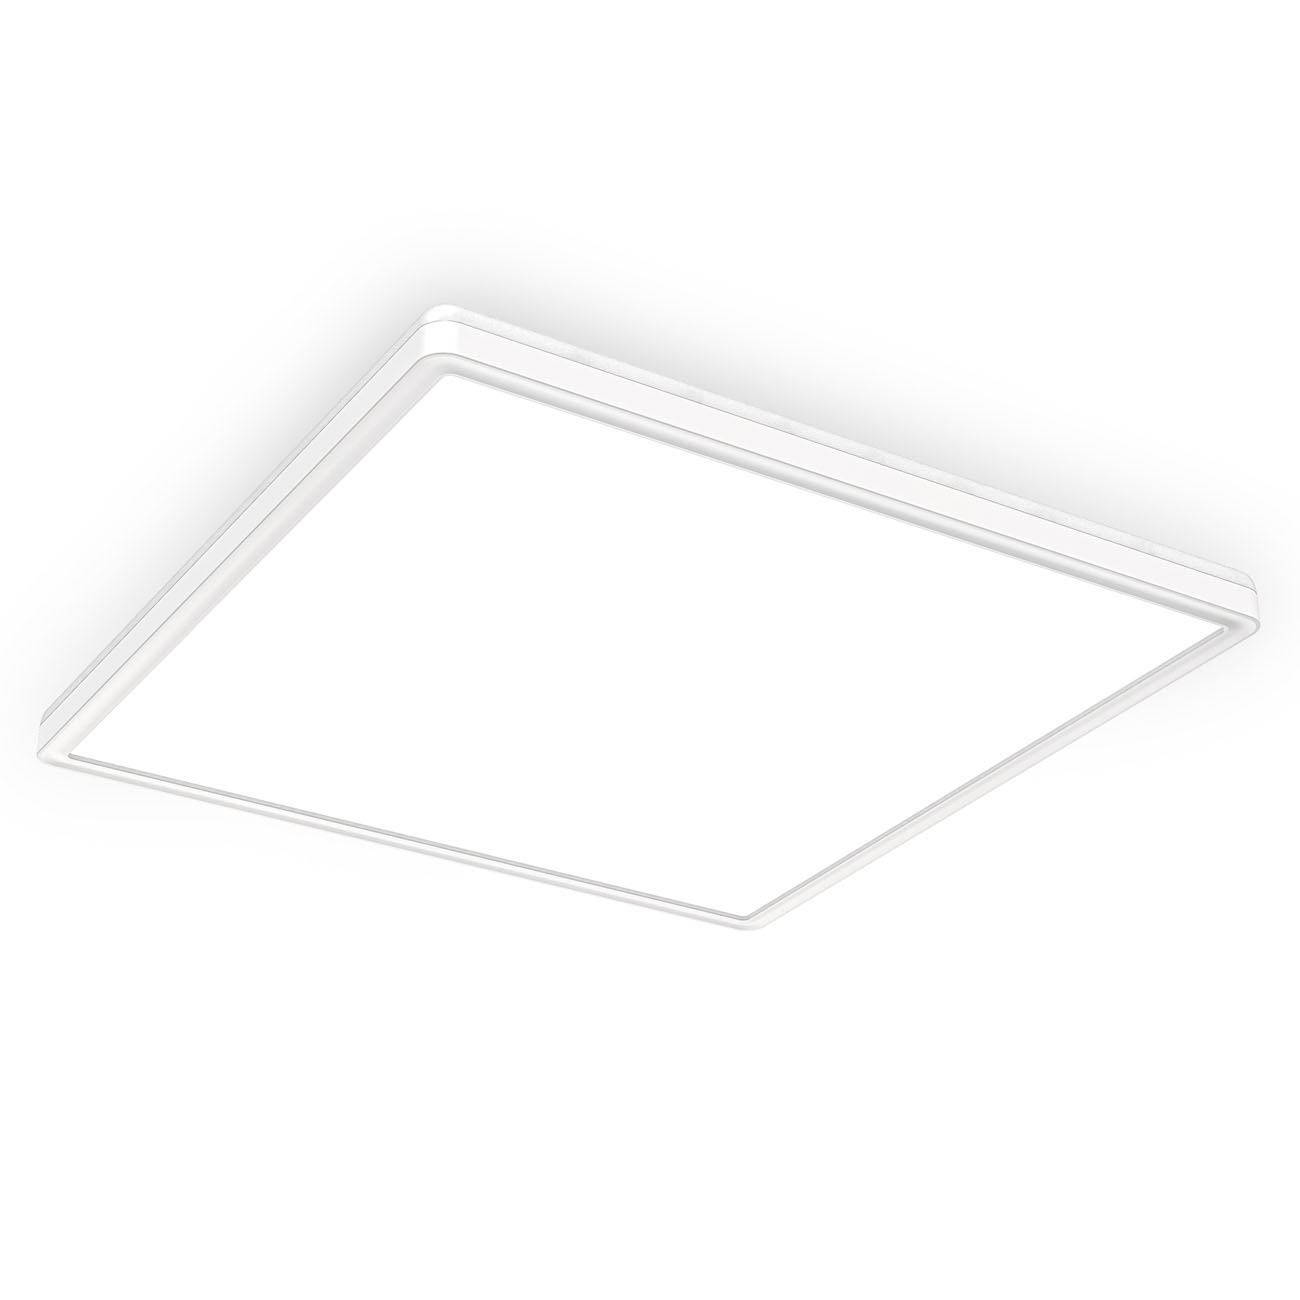 LED Panel mit Backlight-Effekt ultra-flach weiß XL